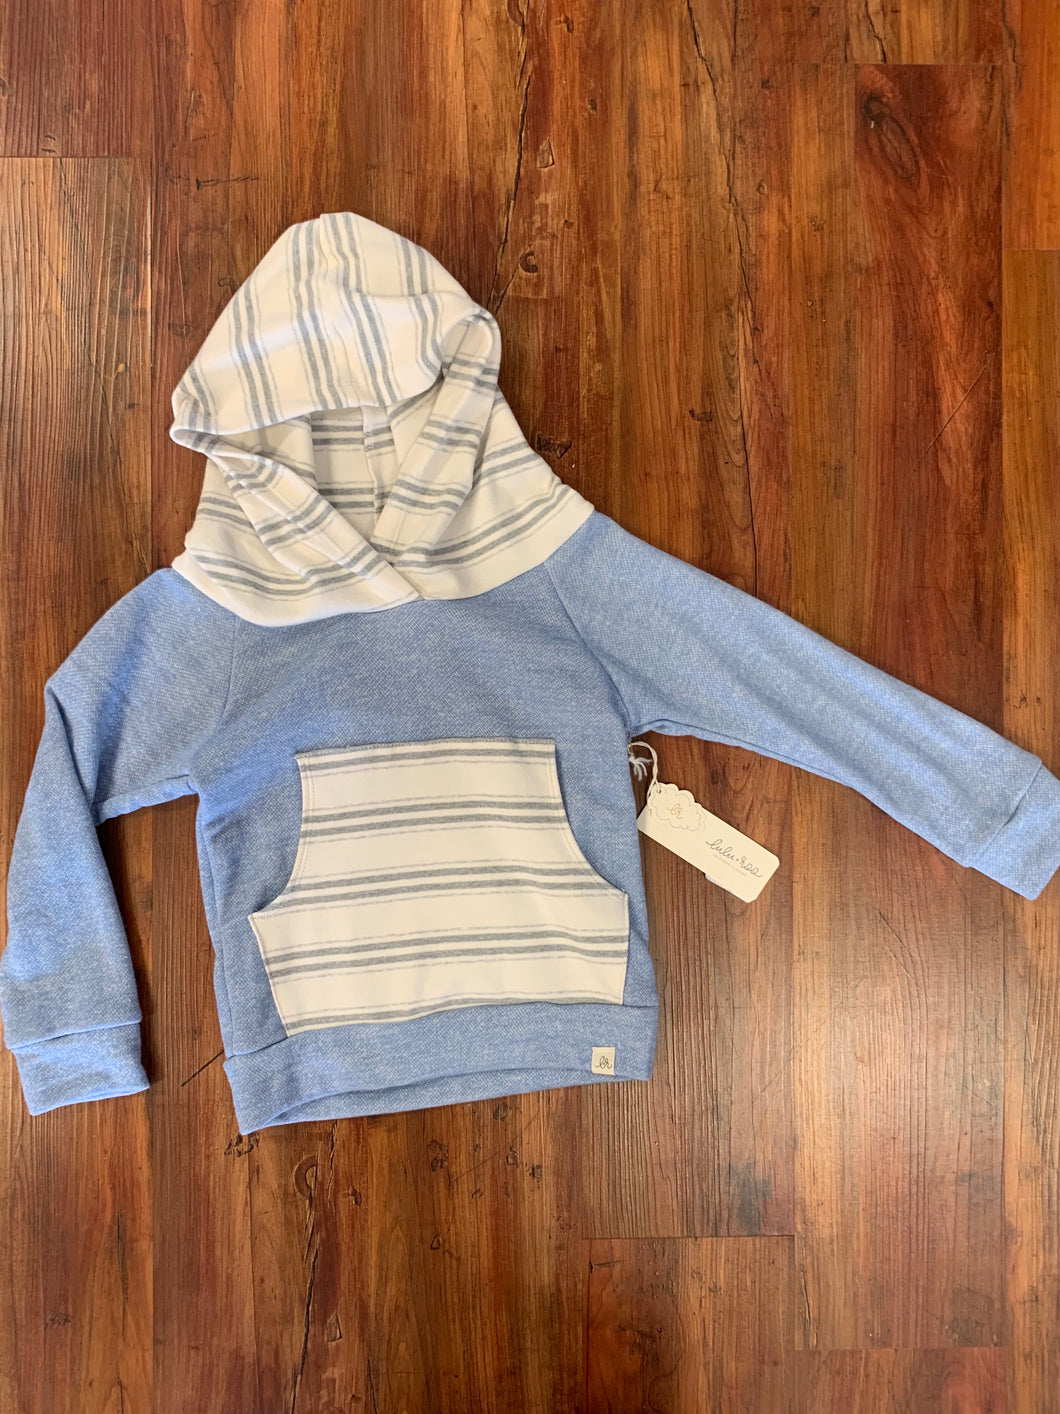 Blue and Gray Hoodie - 50% Off